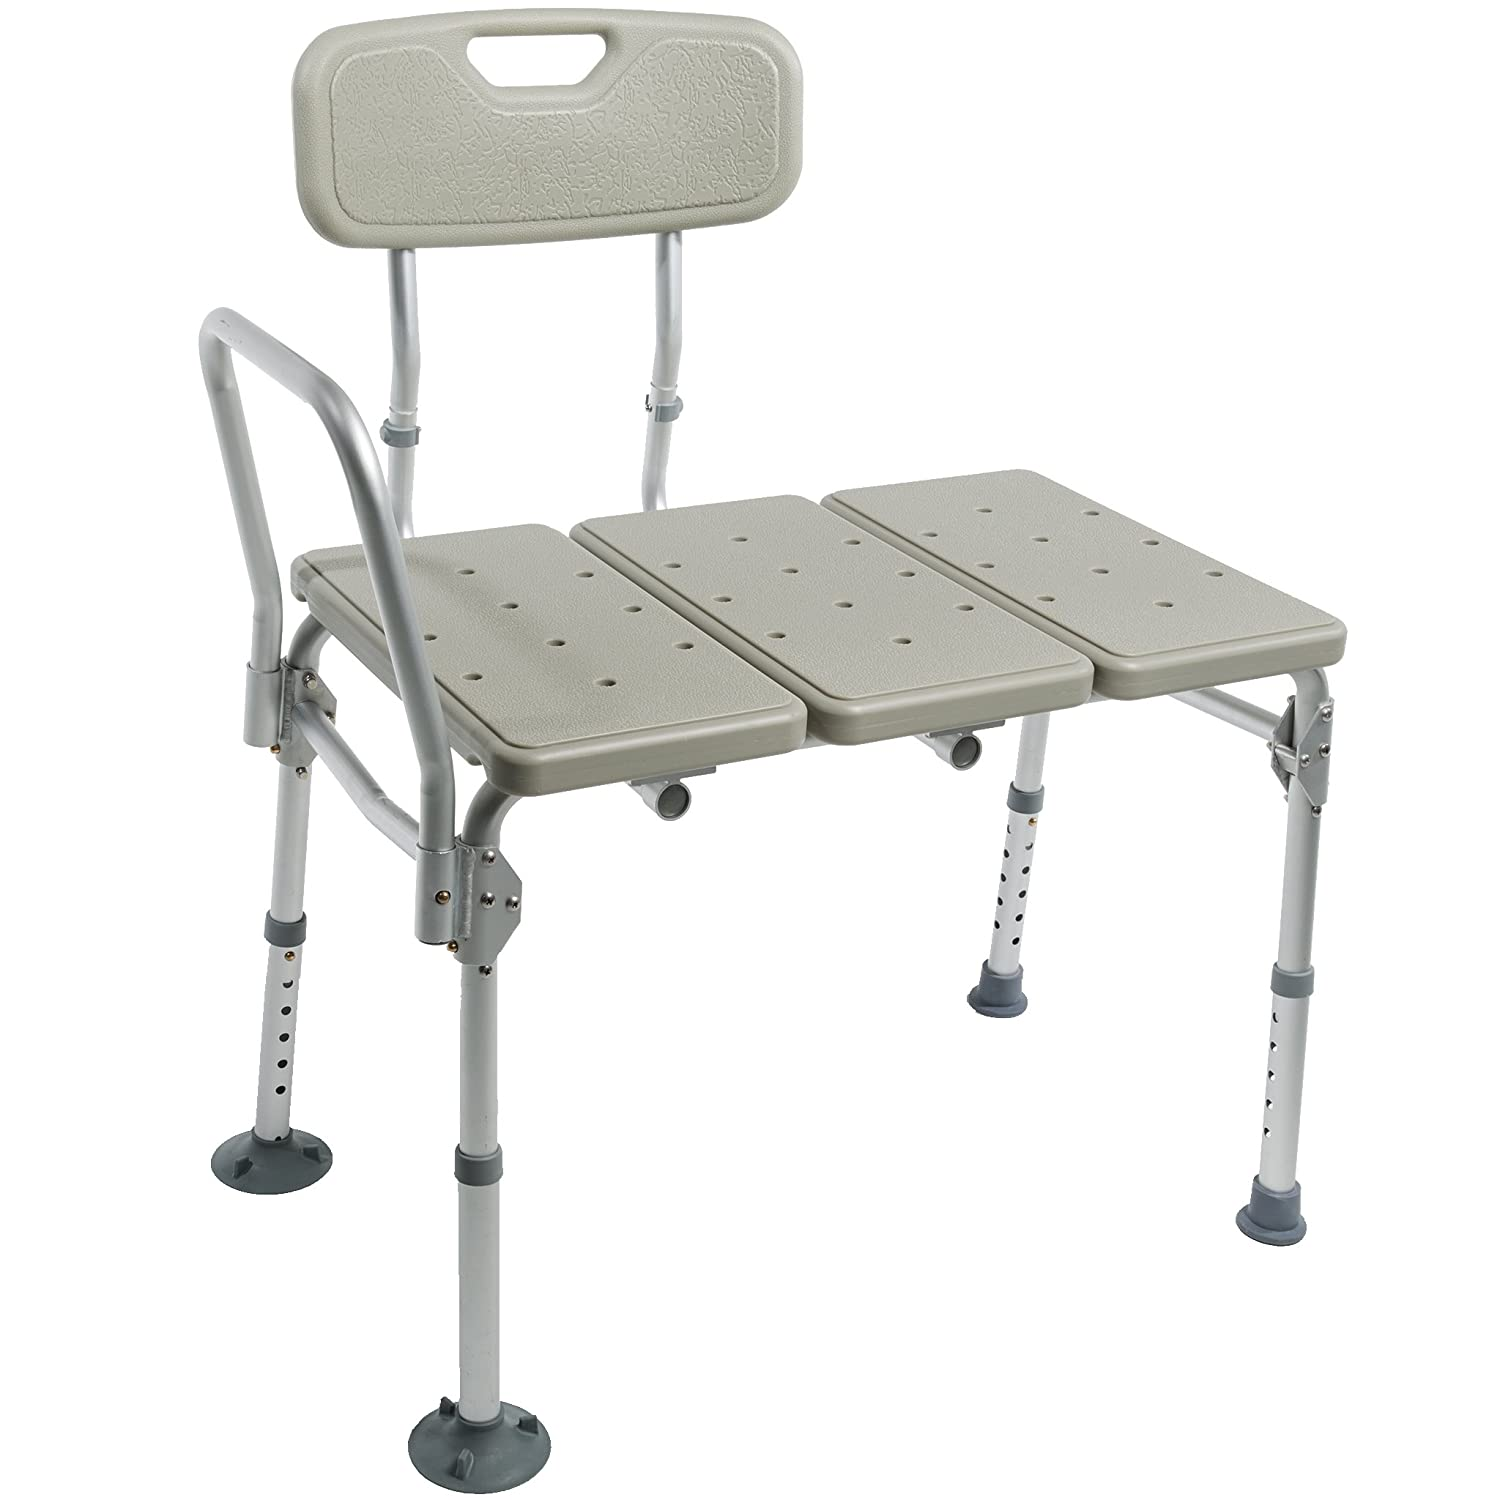 Amazon.com: Pcp Lightweight Folding Transfer Bath Bench, Silver Frost:  Health & Personal Care